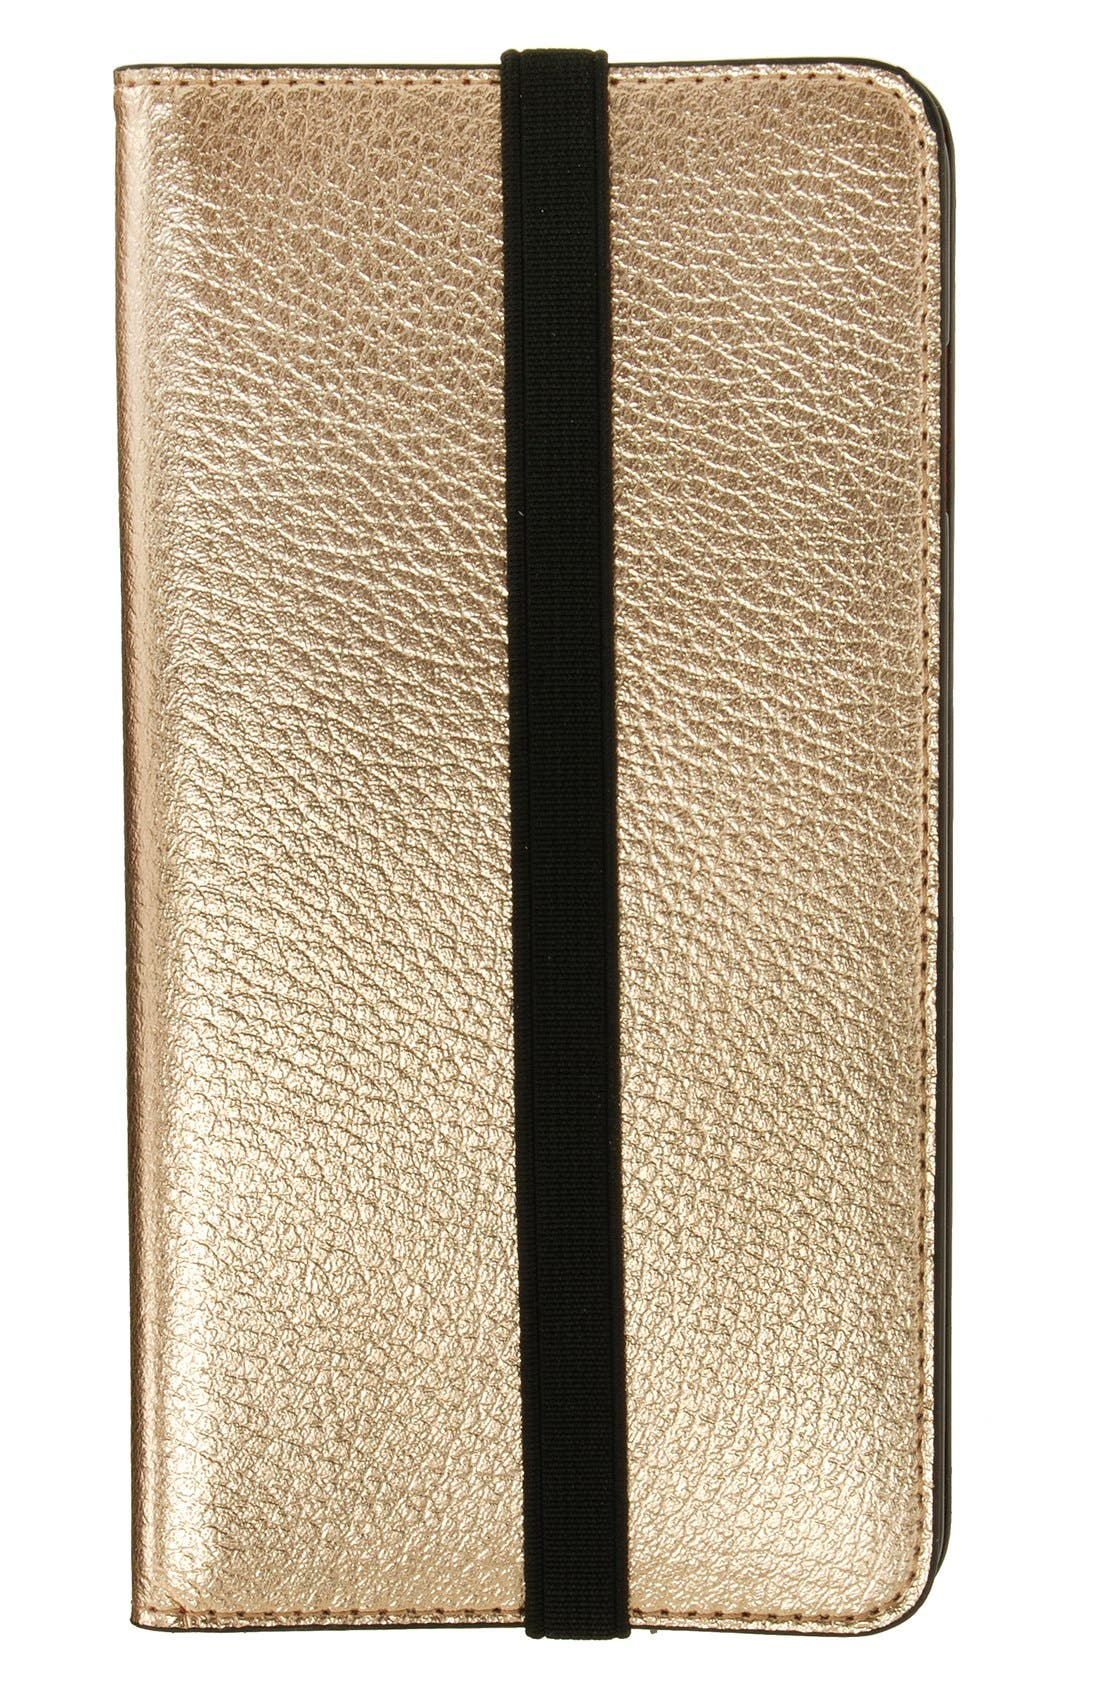 Alternate Image 1 Selected - Mobileluxe iPhone 6 Plus/6s Plus Metallic Leather Wallet Case